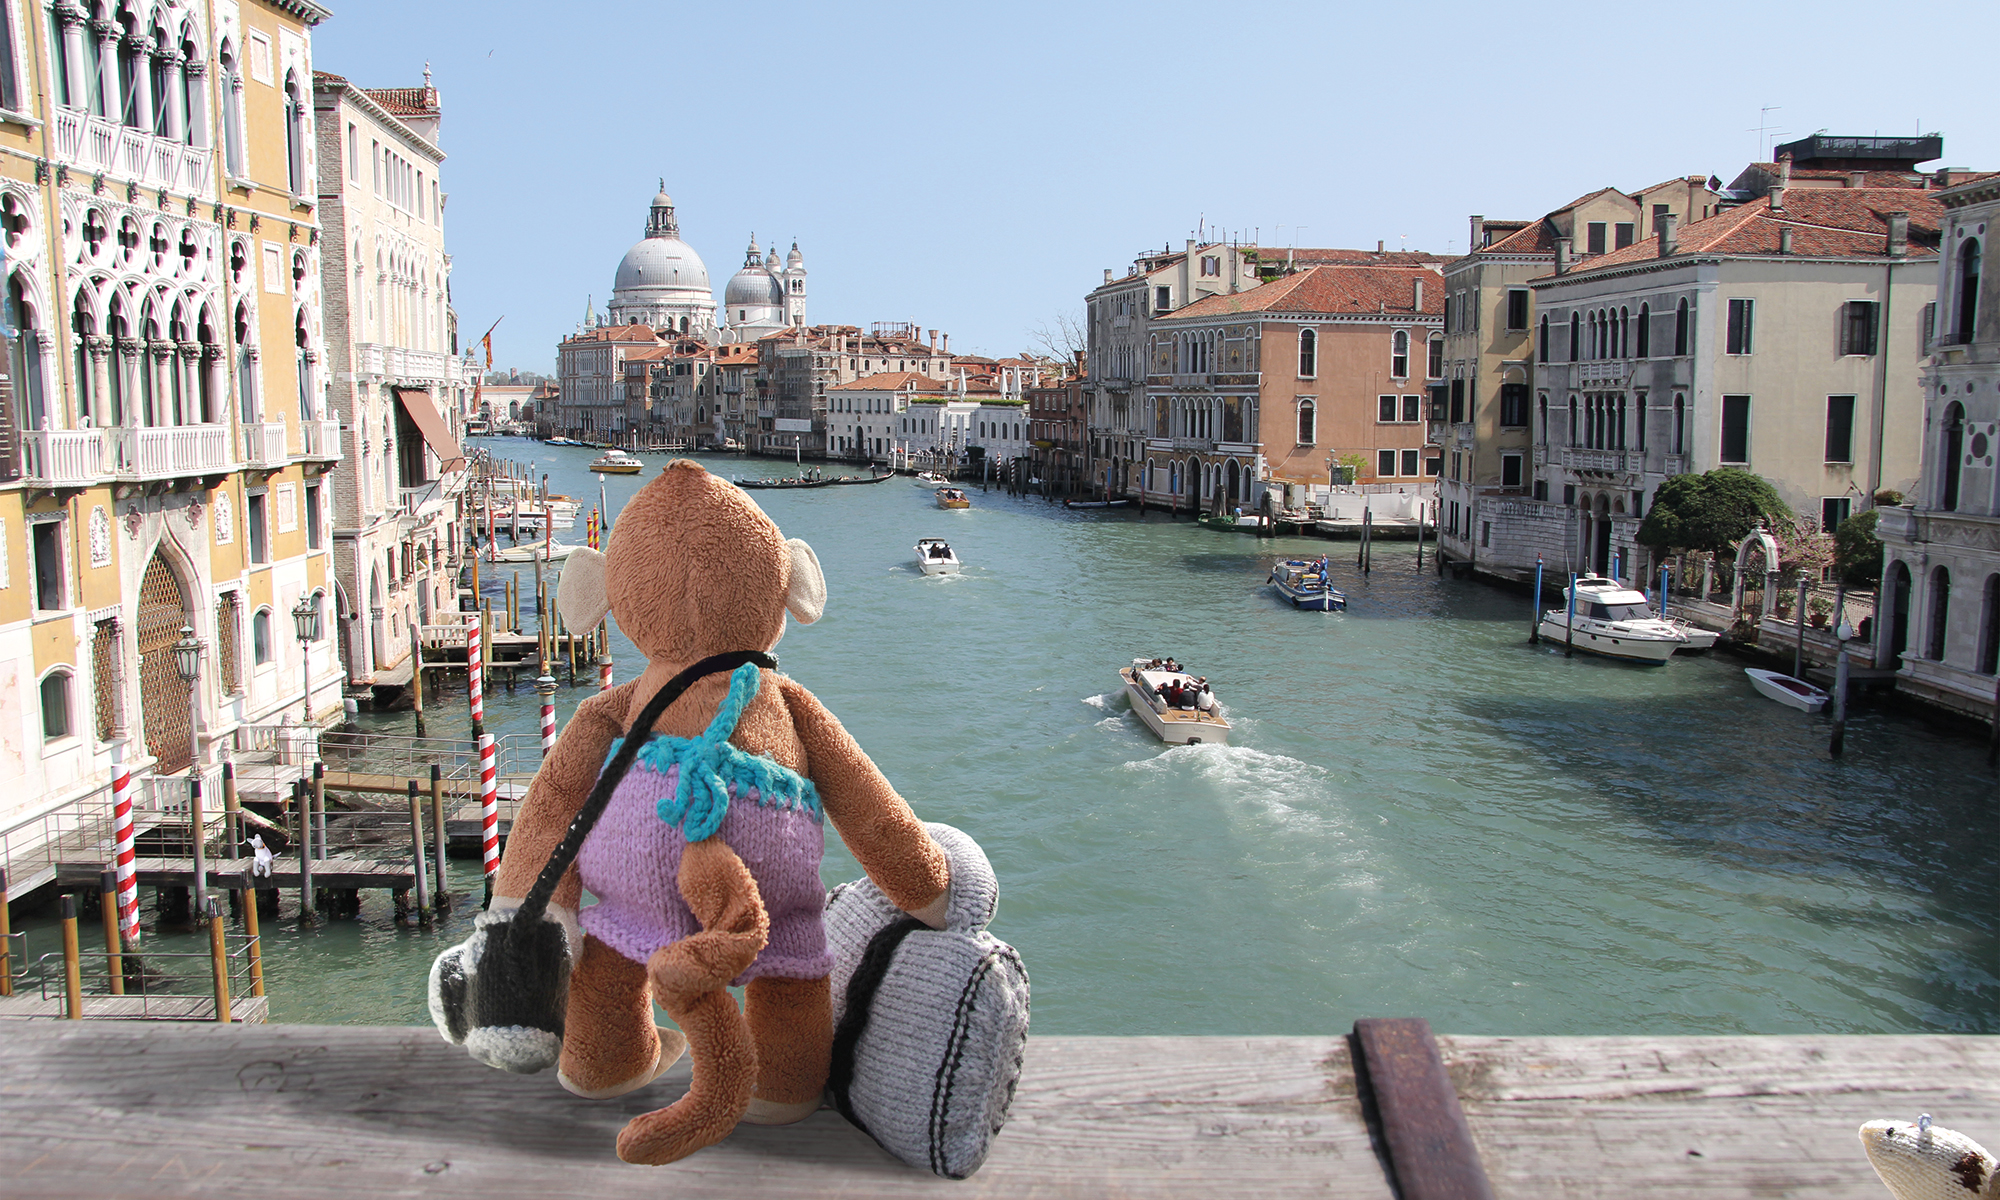 Monkey looking at the grand canal in Venice